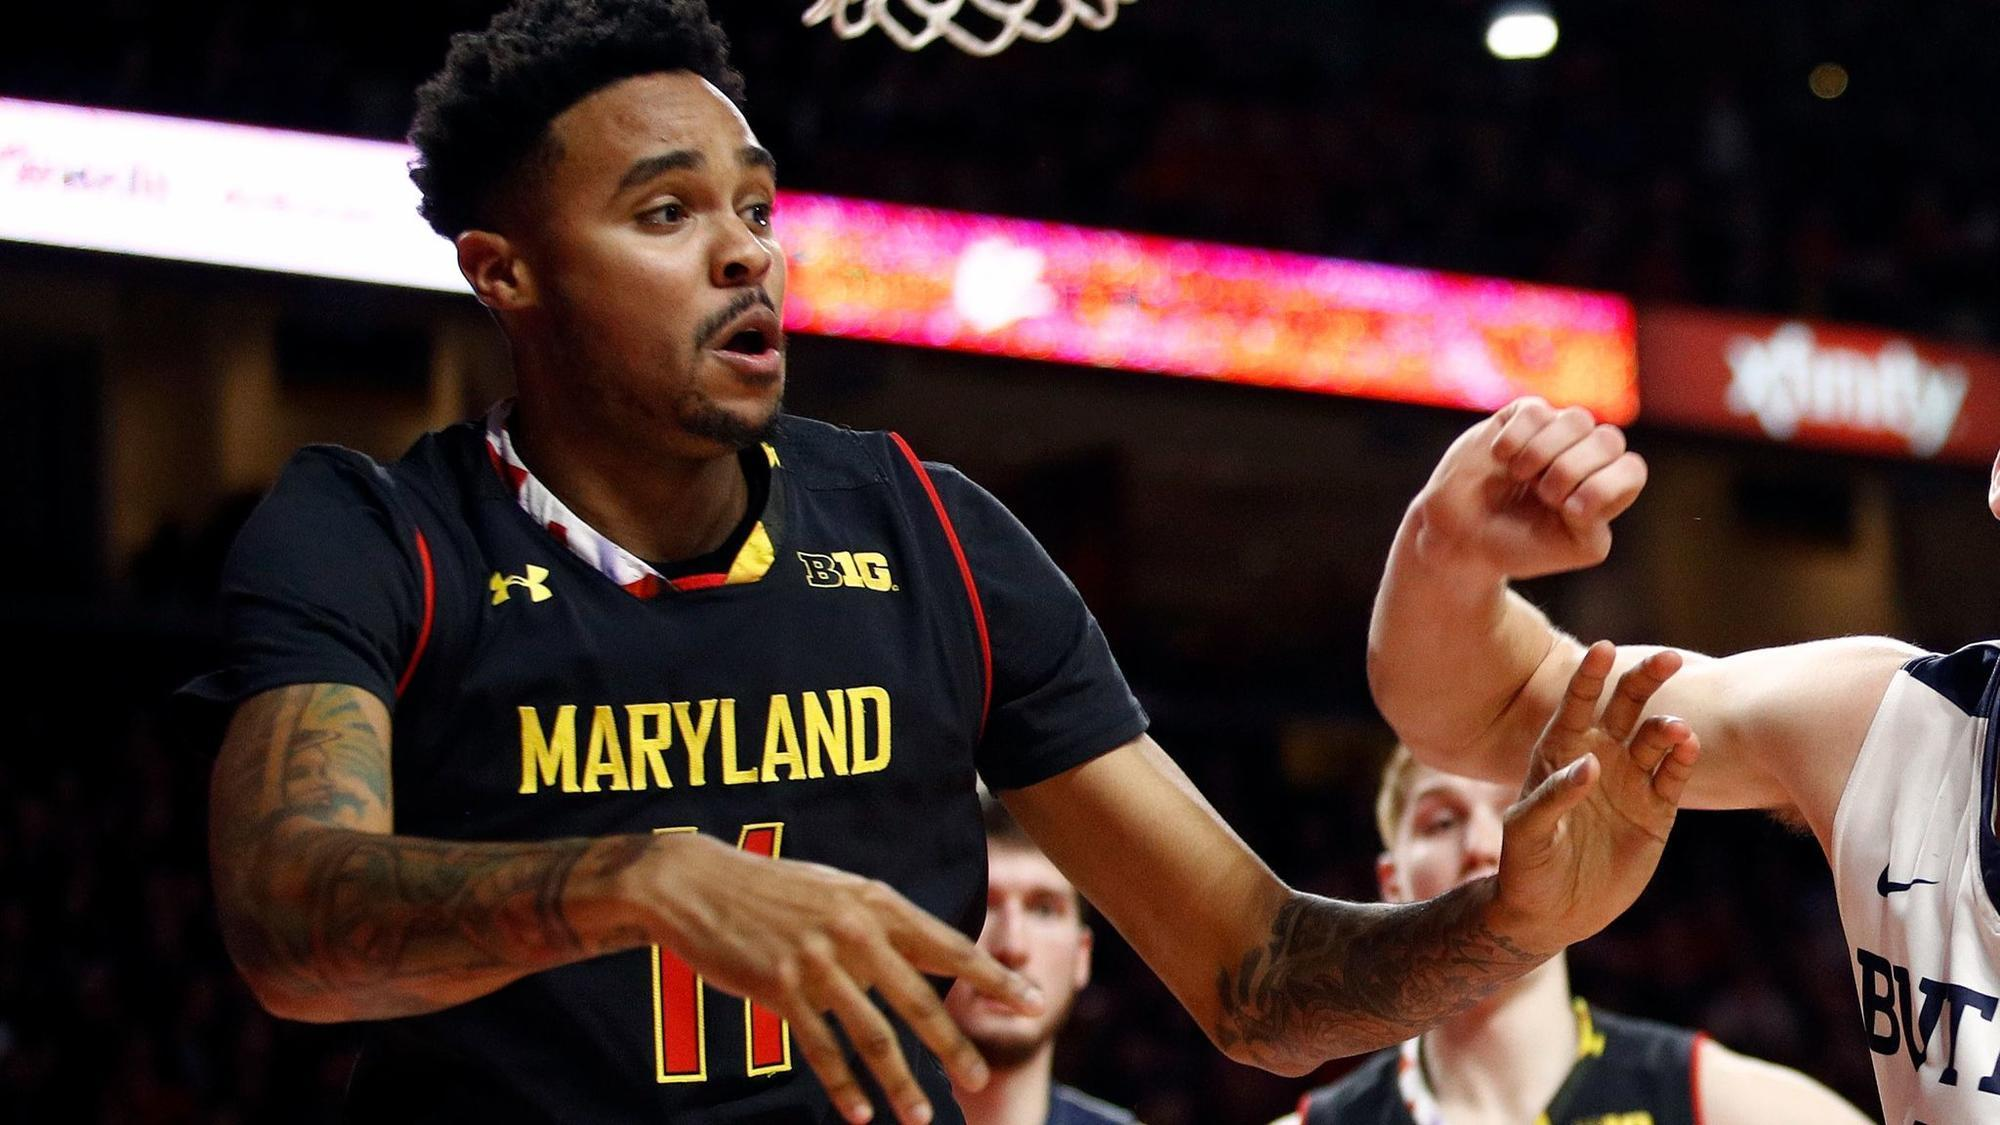 Bs-sp-maryland-catholic-basketball-game-time-tv-stream-20171211